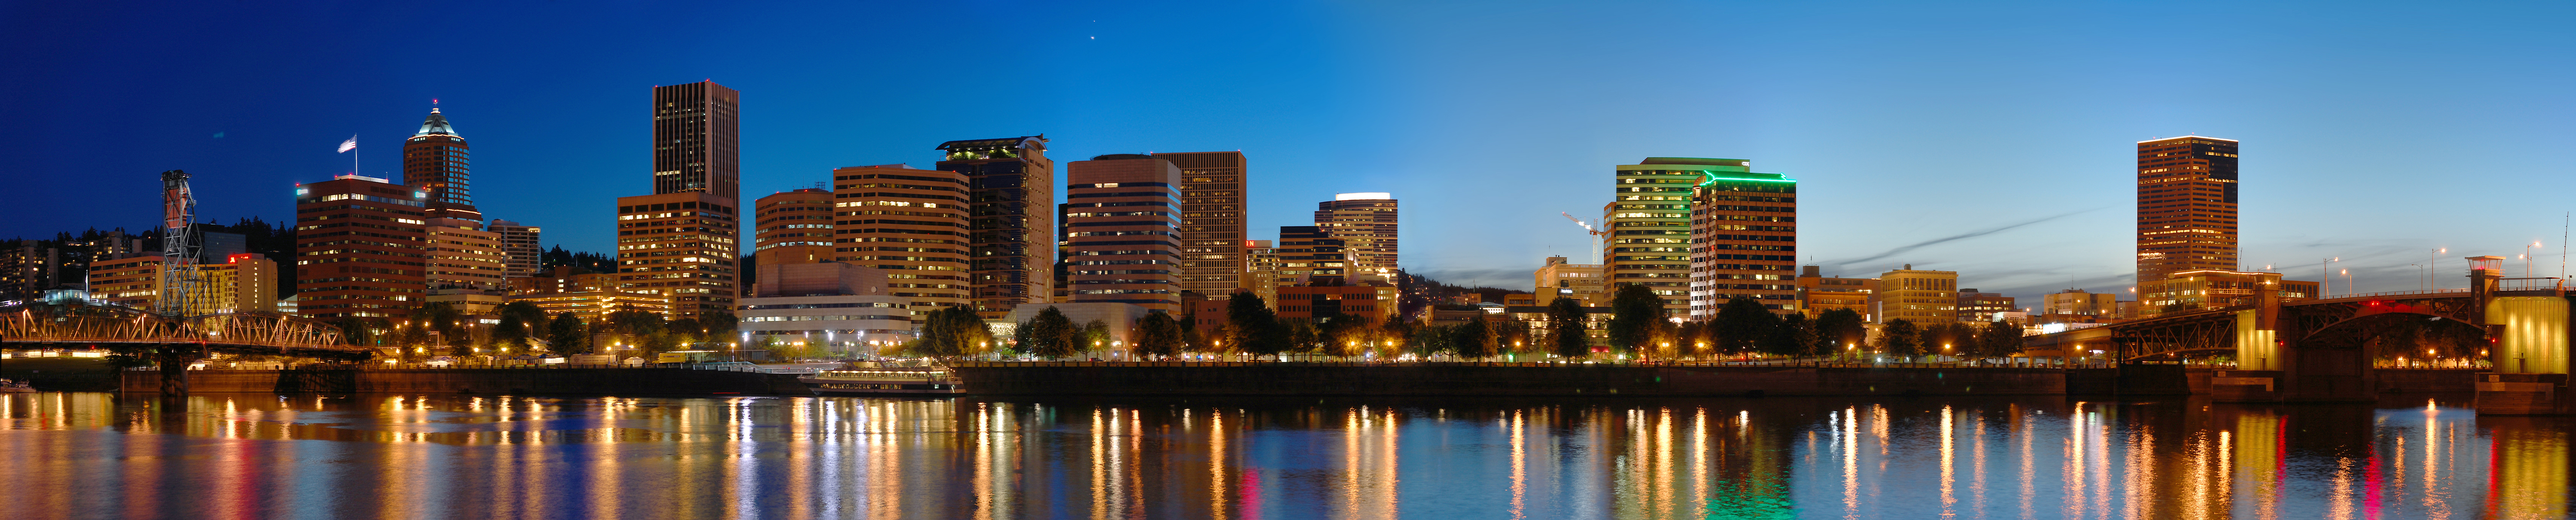 Portland_Night_panorama.jpg